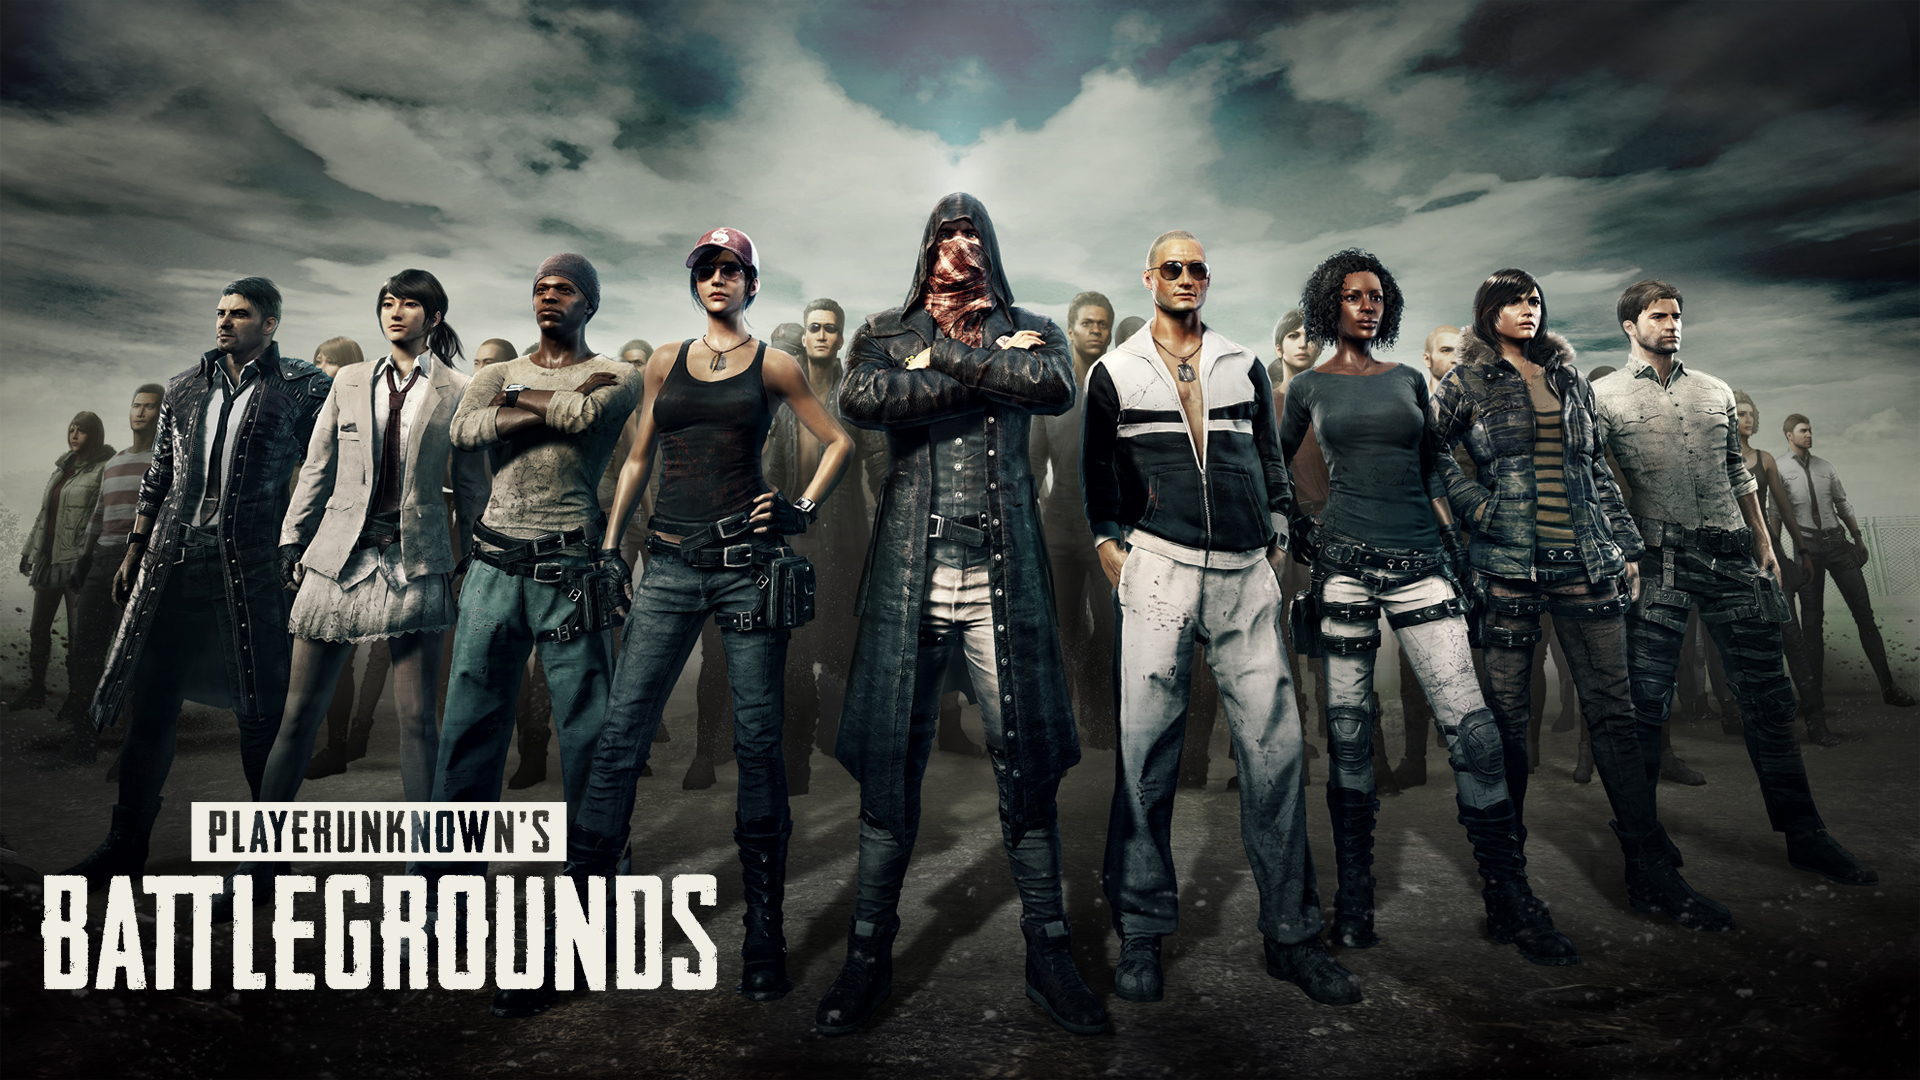 PlayerUnknowns Battlegrounds wallpapers Pictures Images 1920x1080